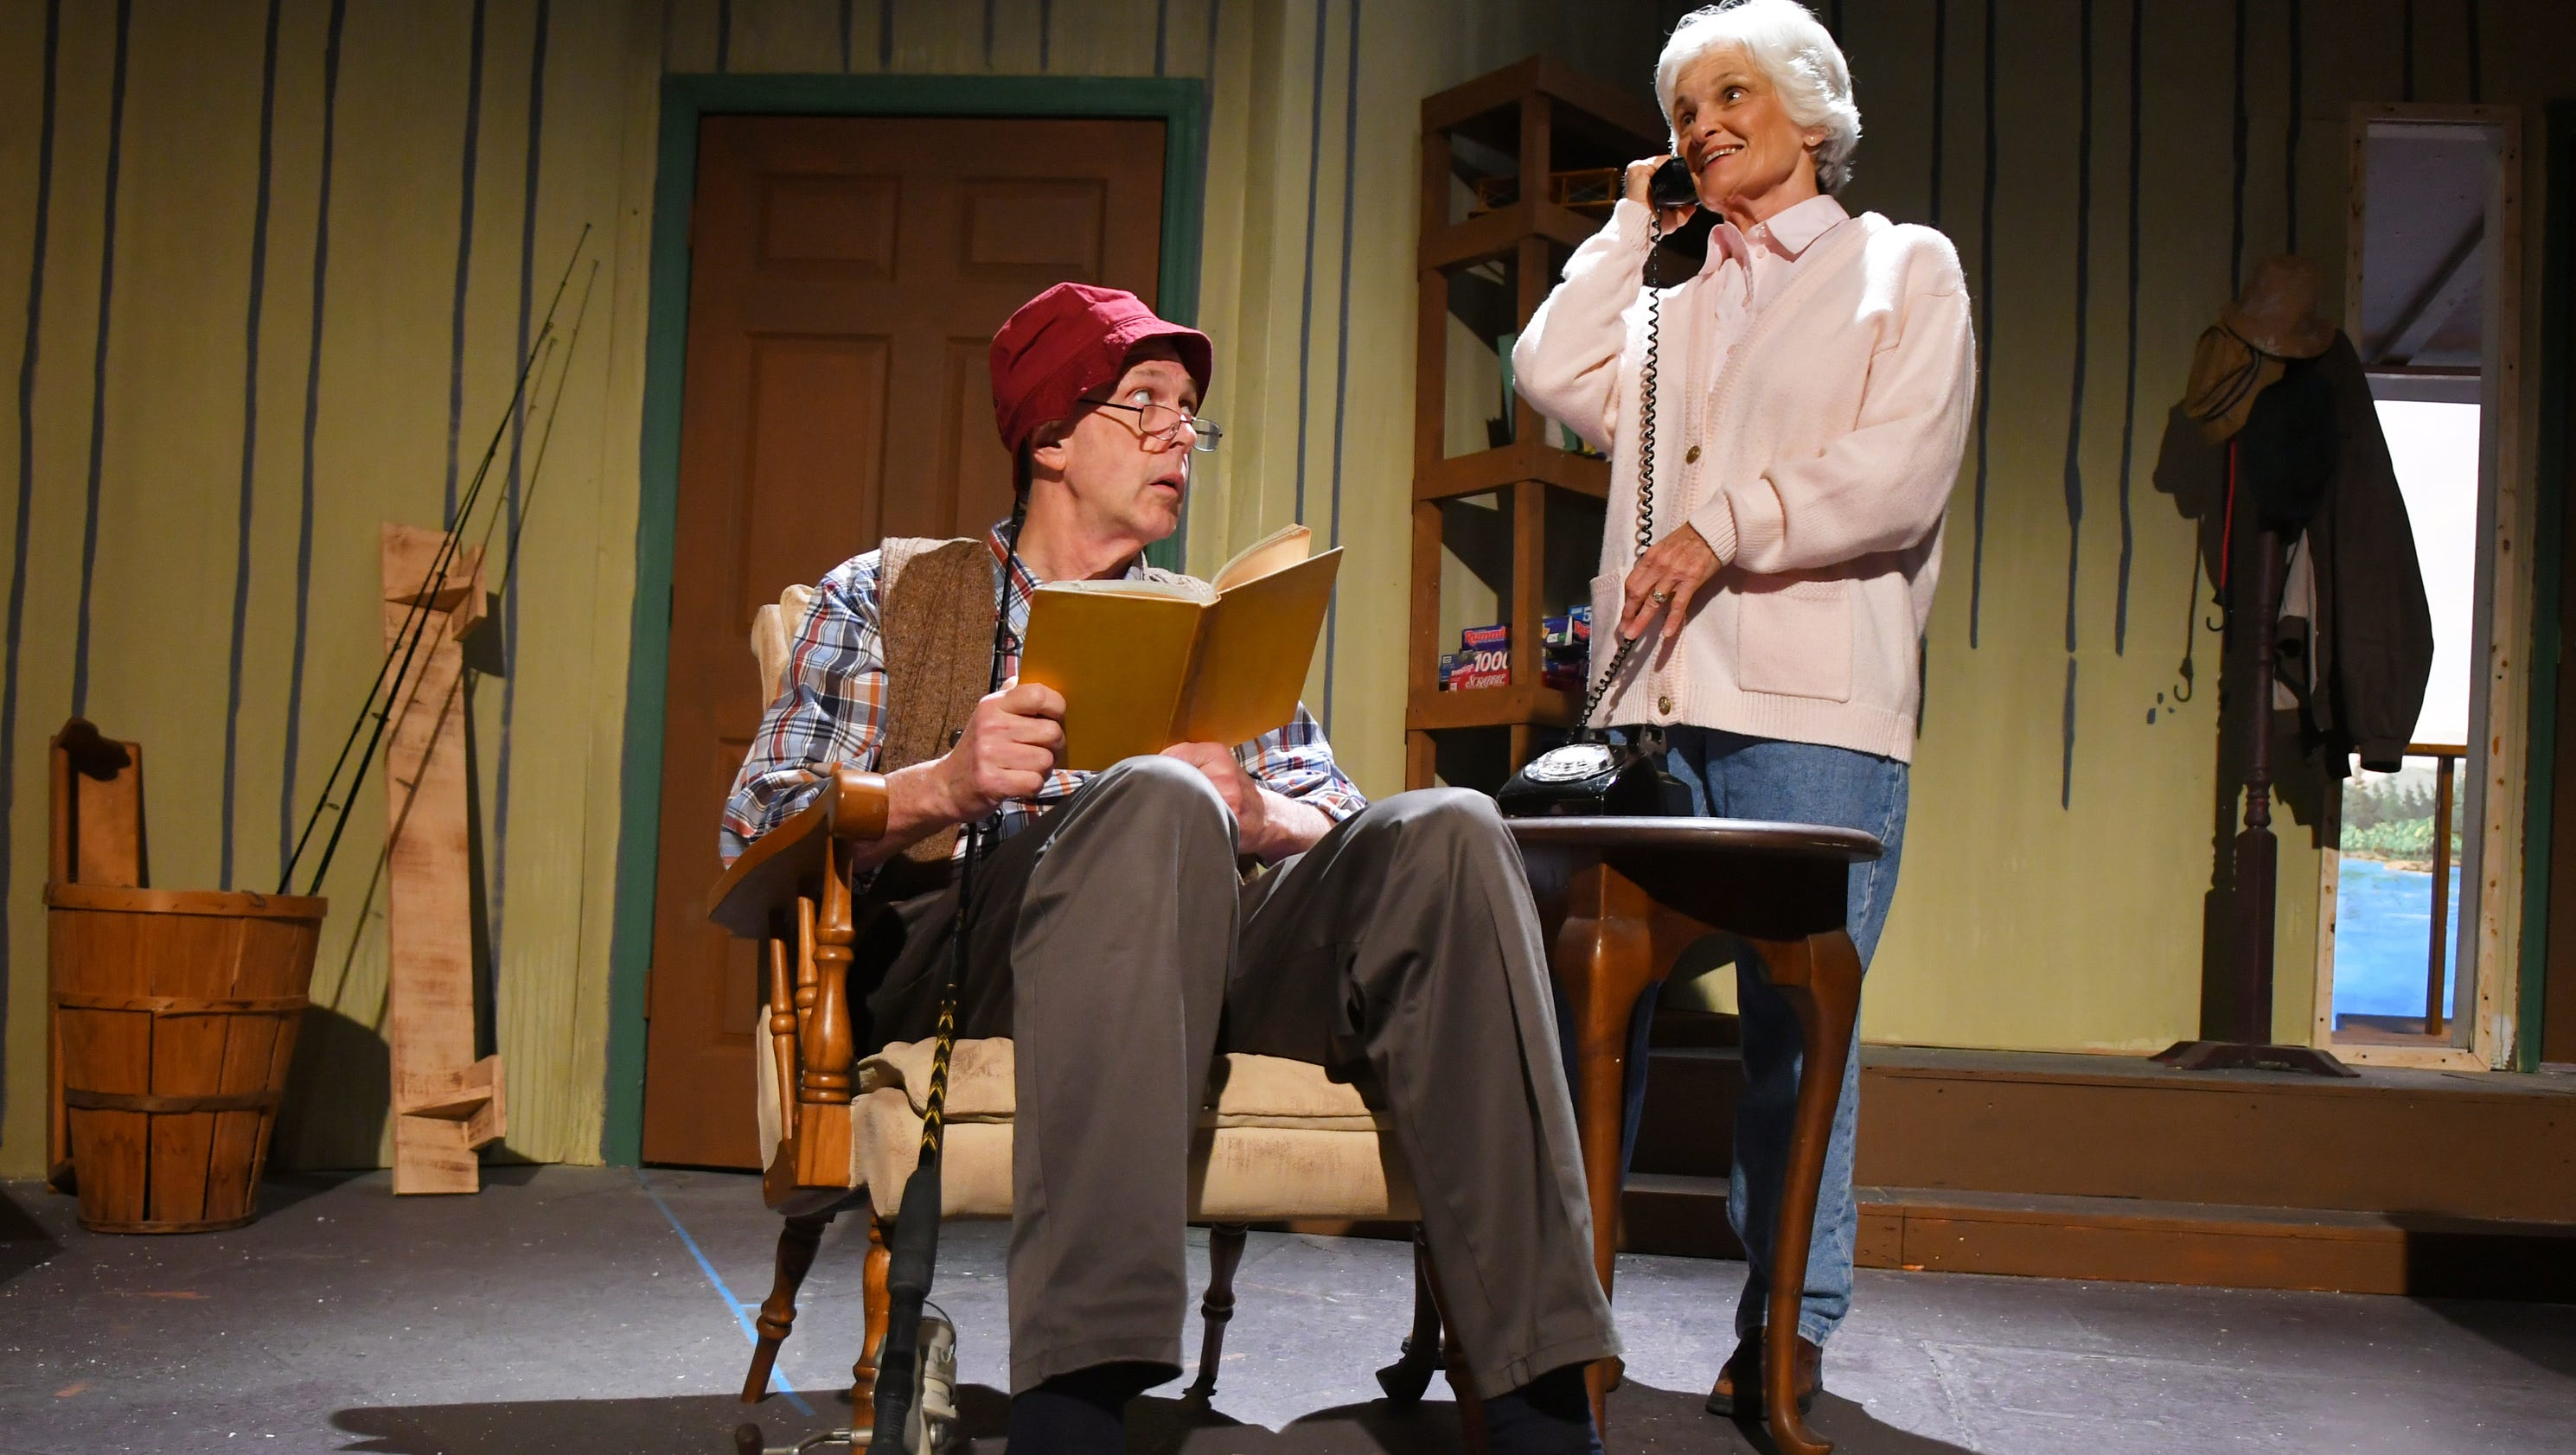 On Golden Pond Quotes Photos On Golden Pond At Surfside Playhouse